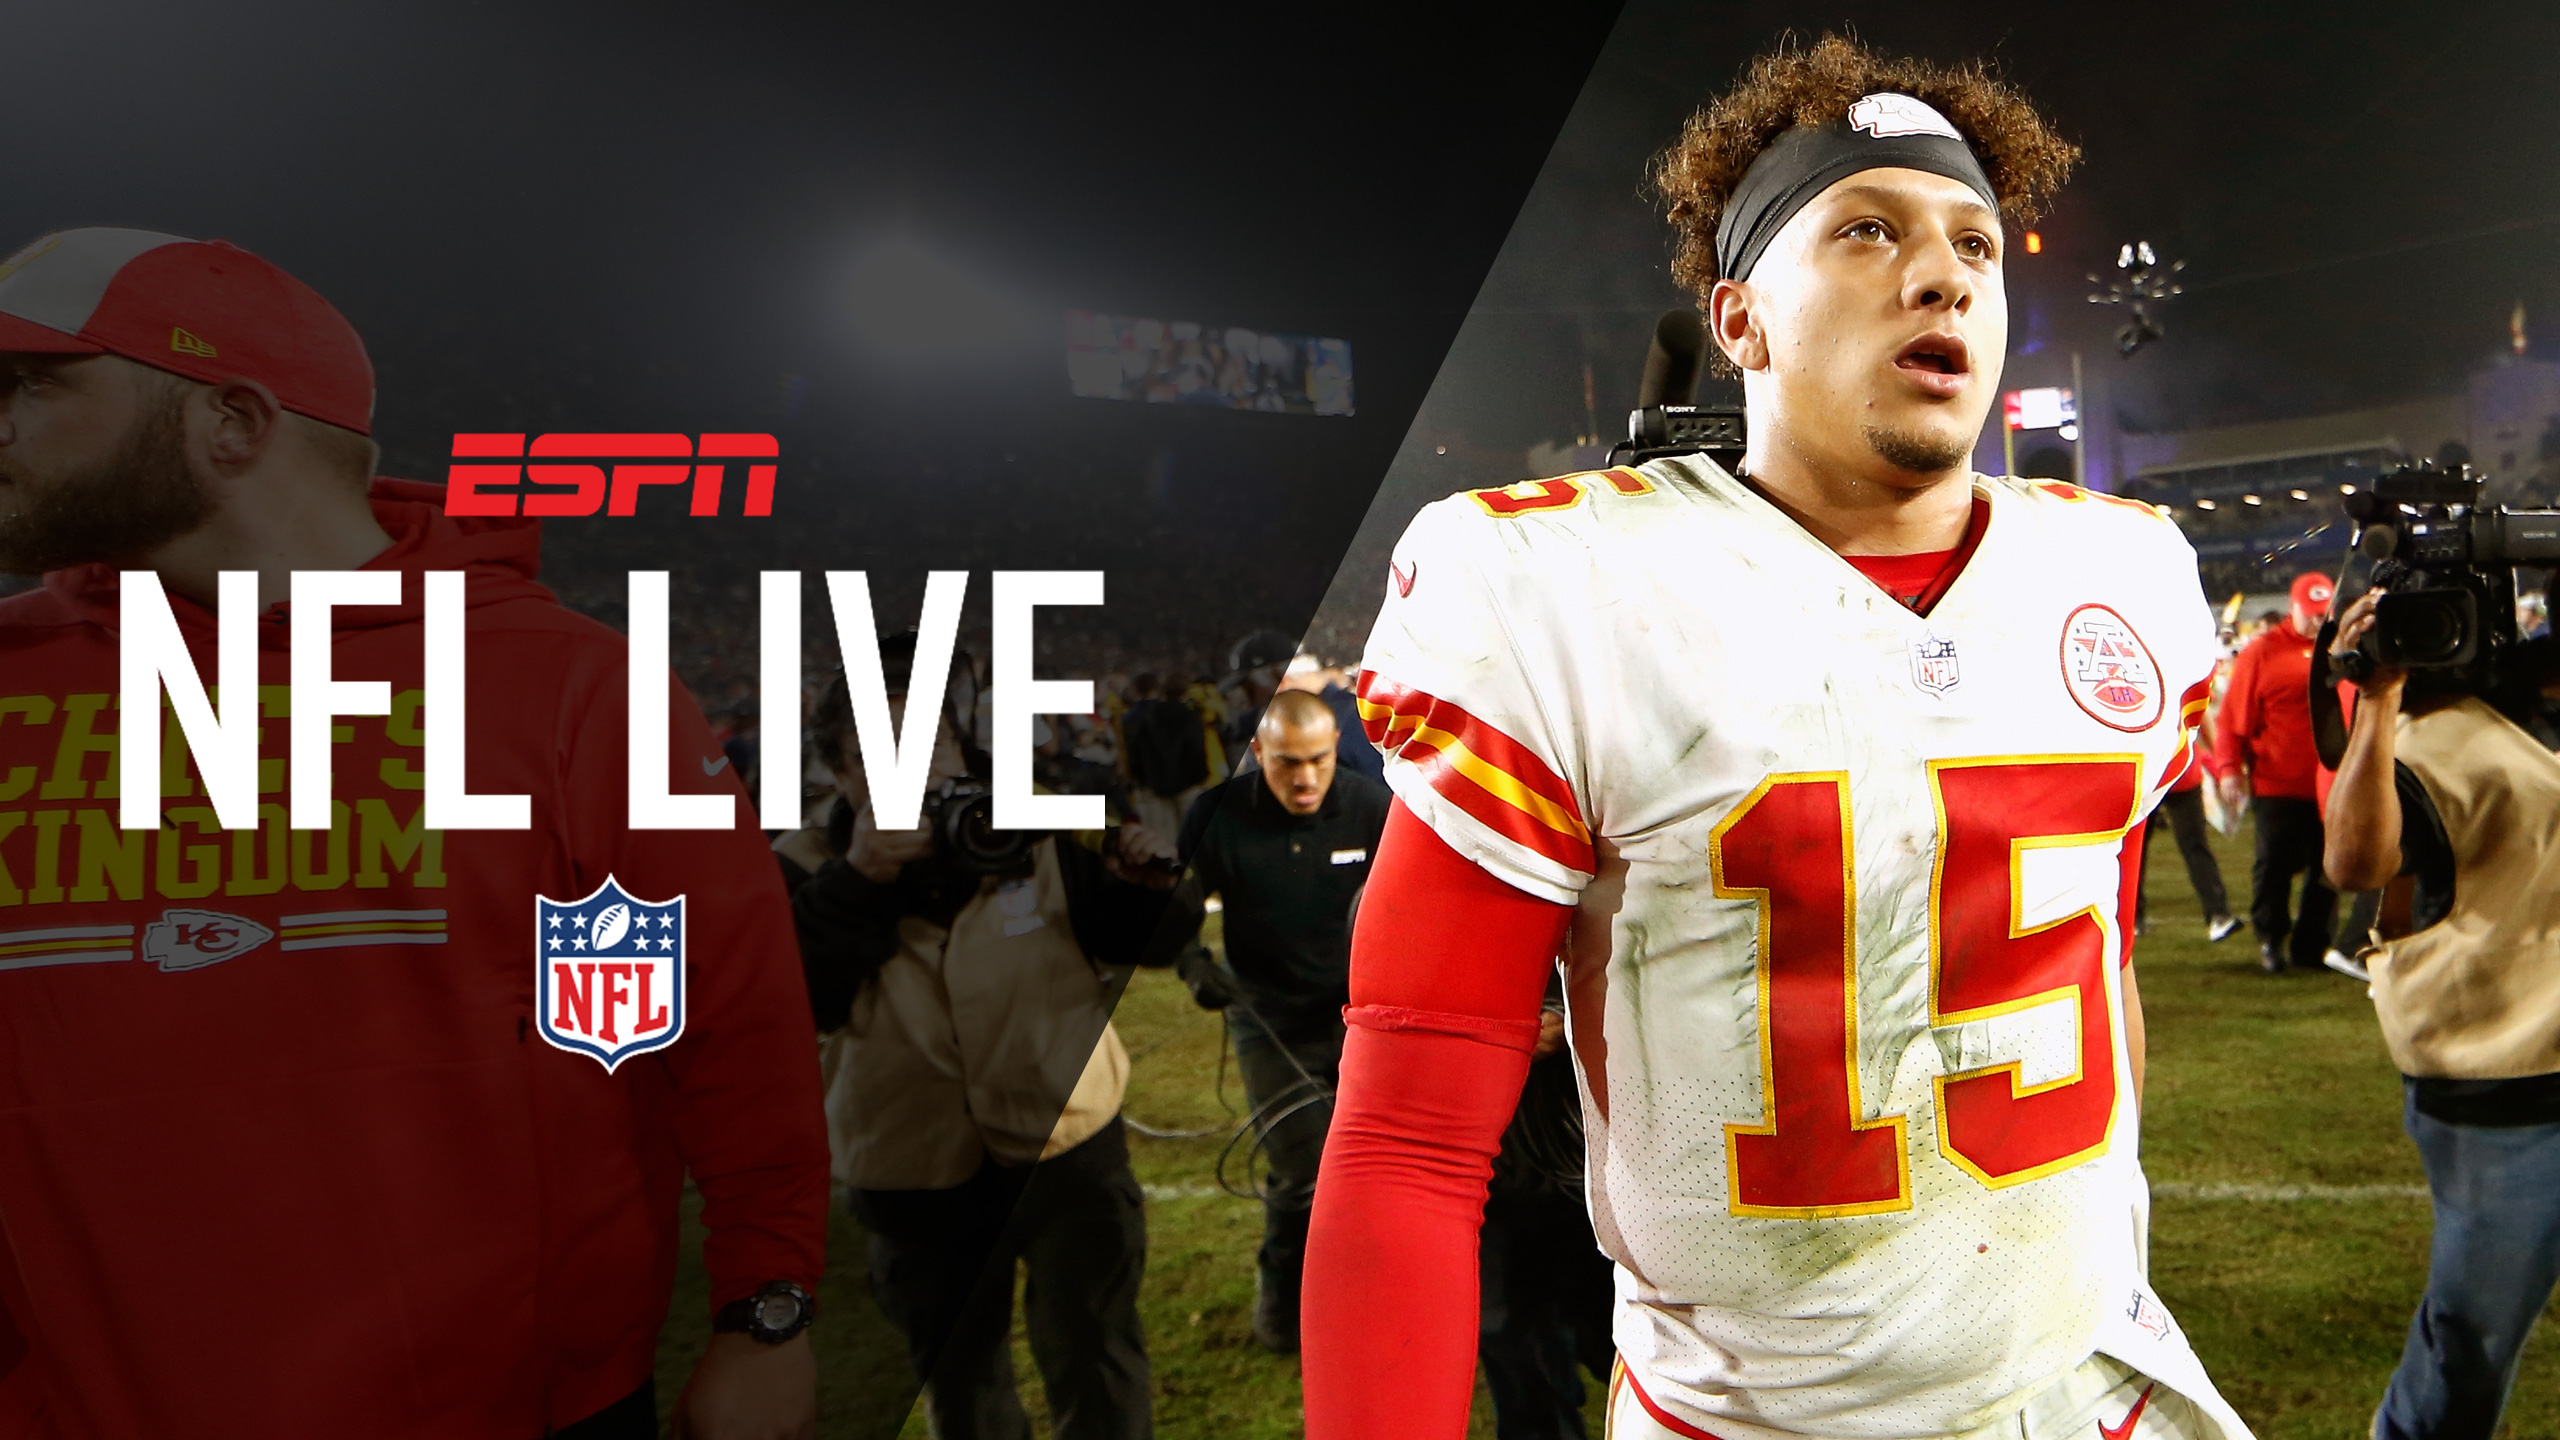 NFL Live presented by KFC